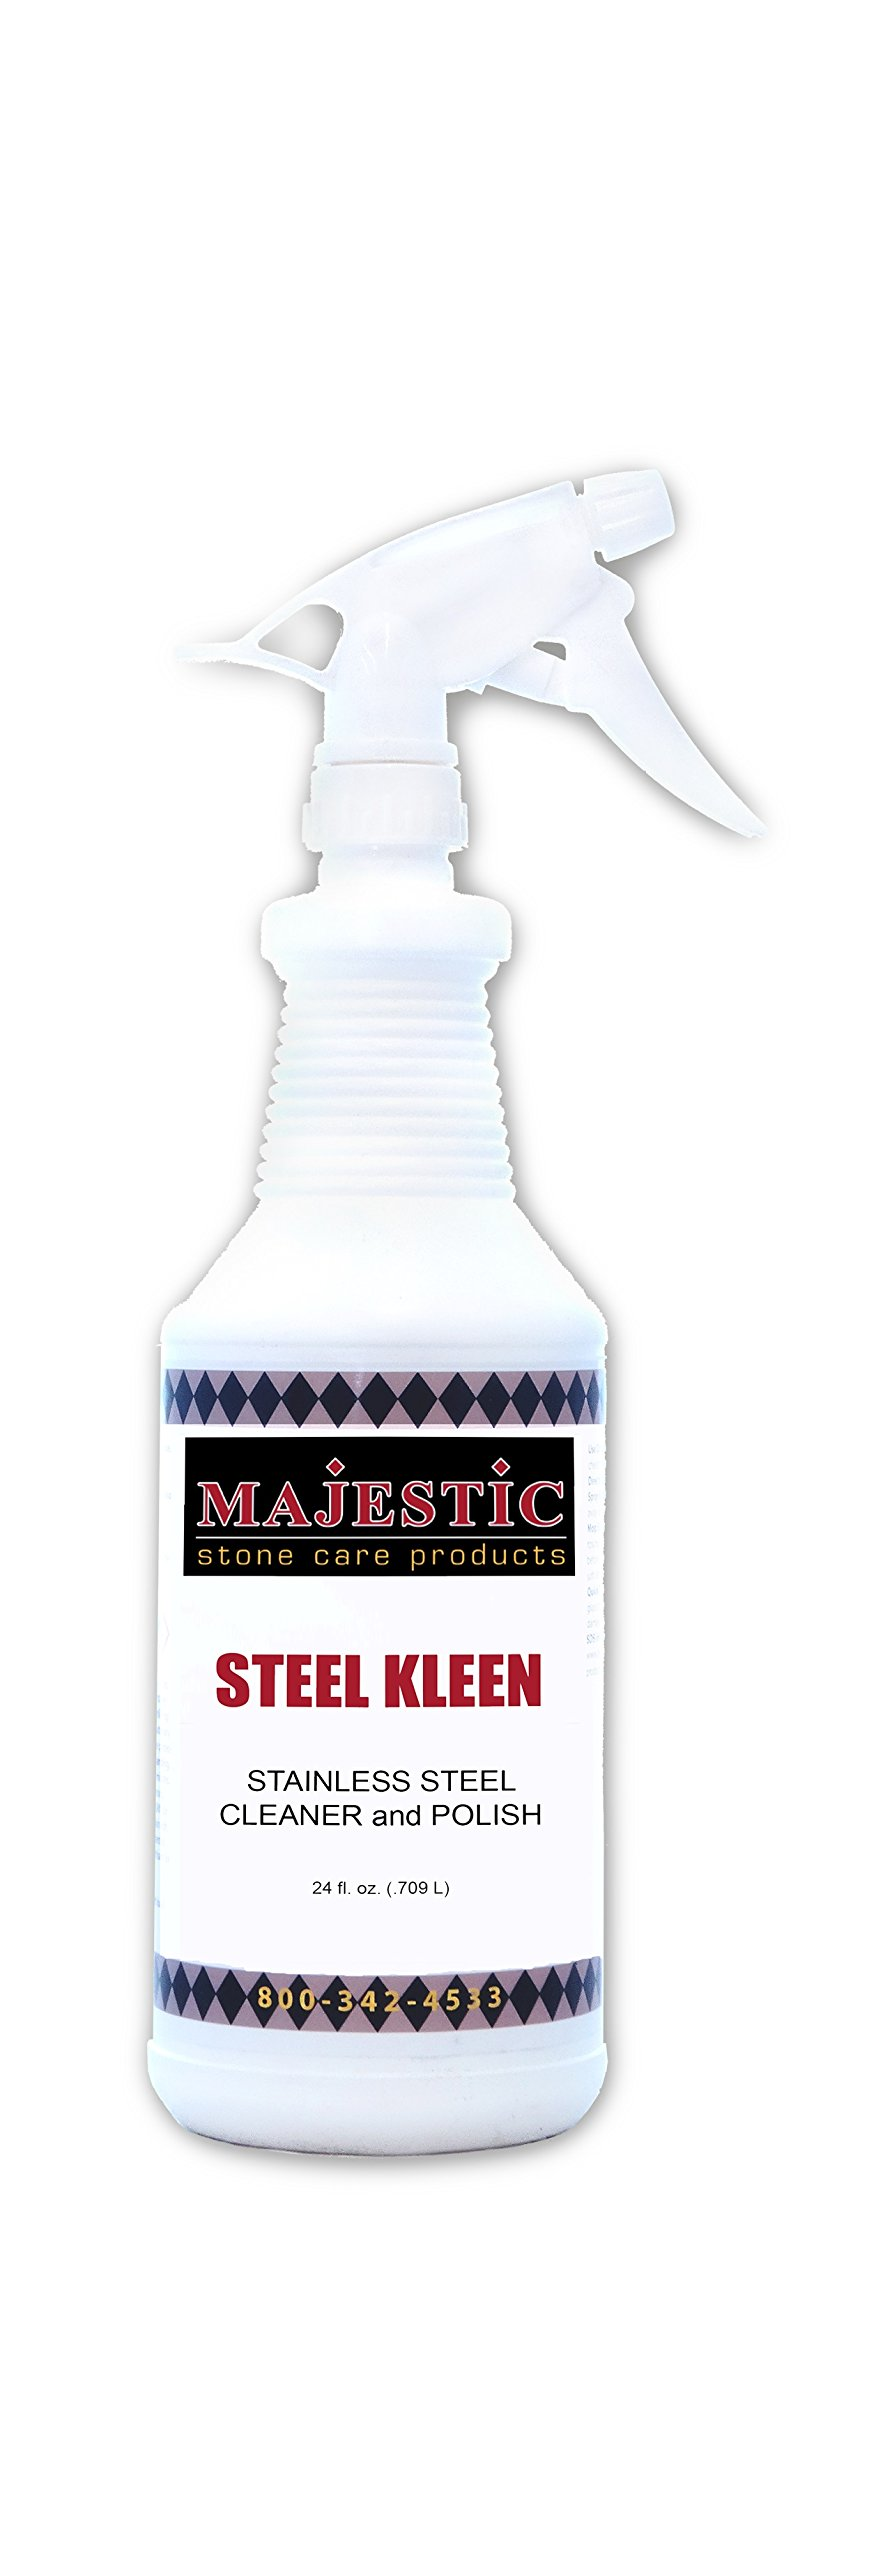 Steel Kleen Stainless Steel Cleaner 24 Oz Case/6 by Majestic Stone Care Products